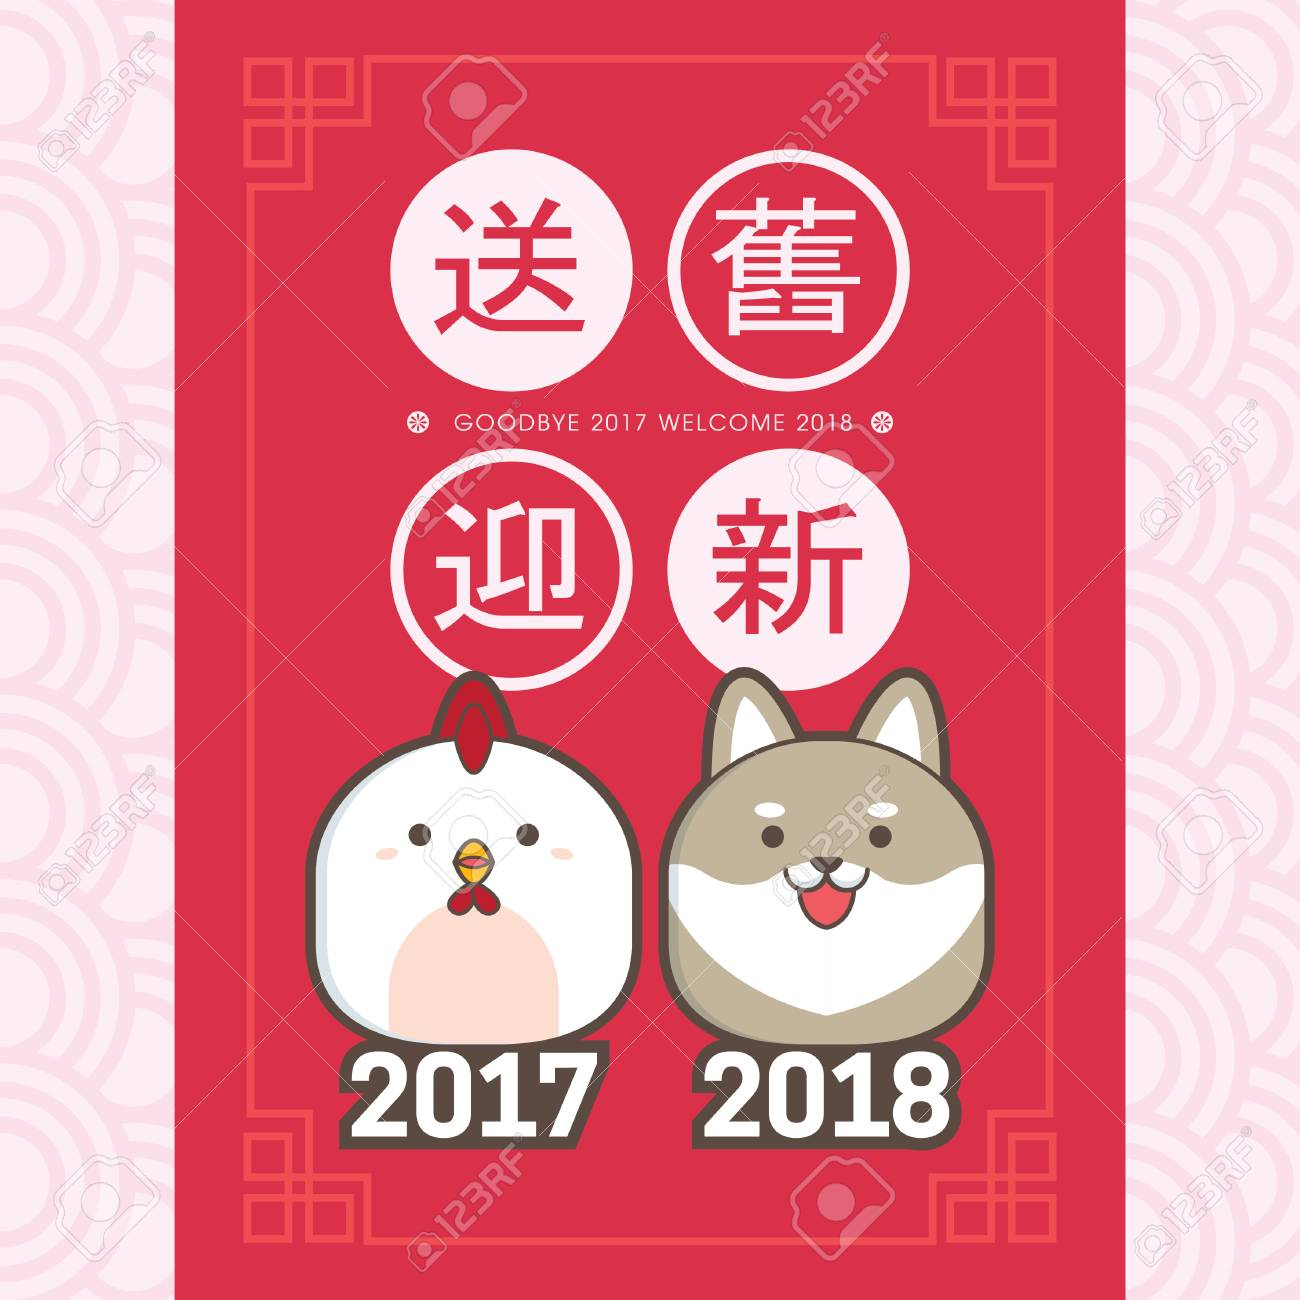 2018 chinese new year greeting card template with cute chicken 2018 chinese new year greeting card template with cute chicken puppy translation m4hsunfo